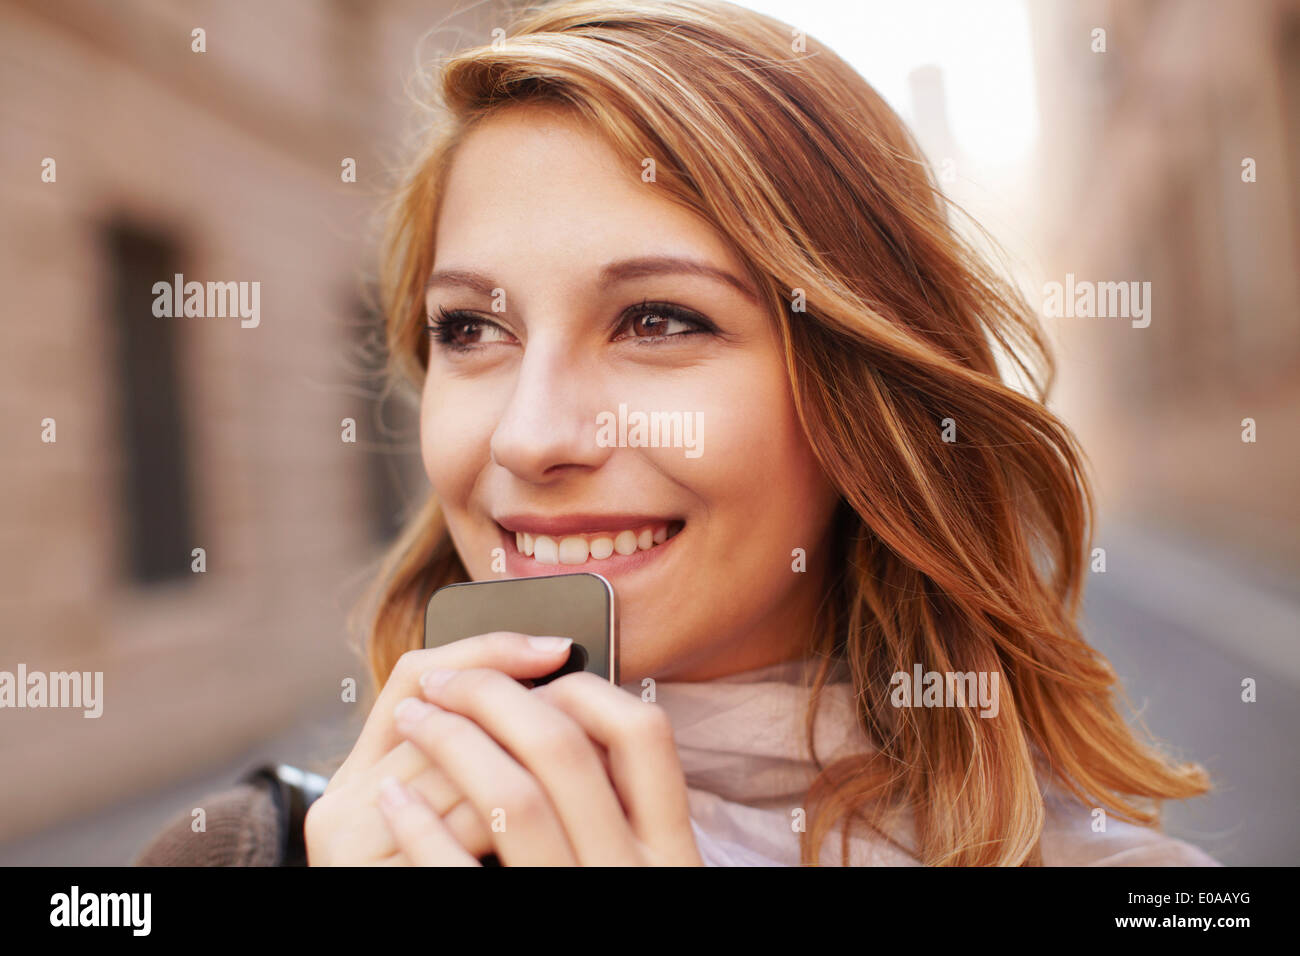 Close up of attractive young woman with smartphone - Stock Image